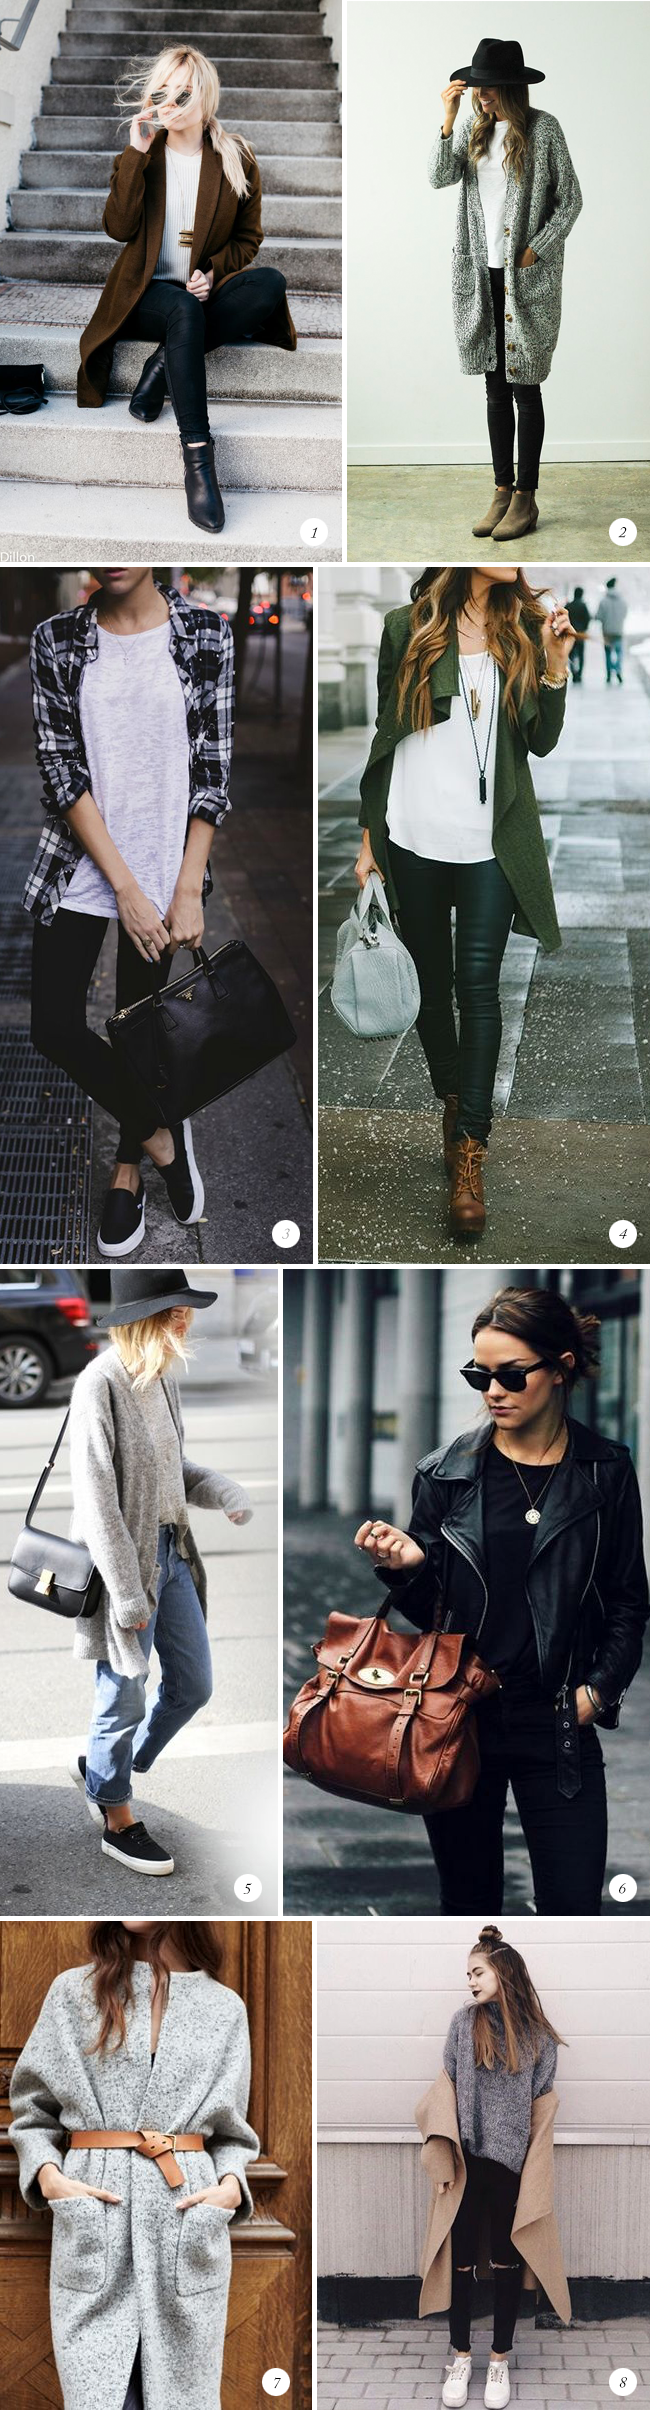 8 Great Winter Looks